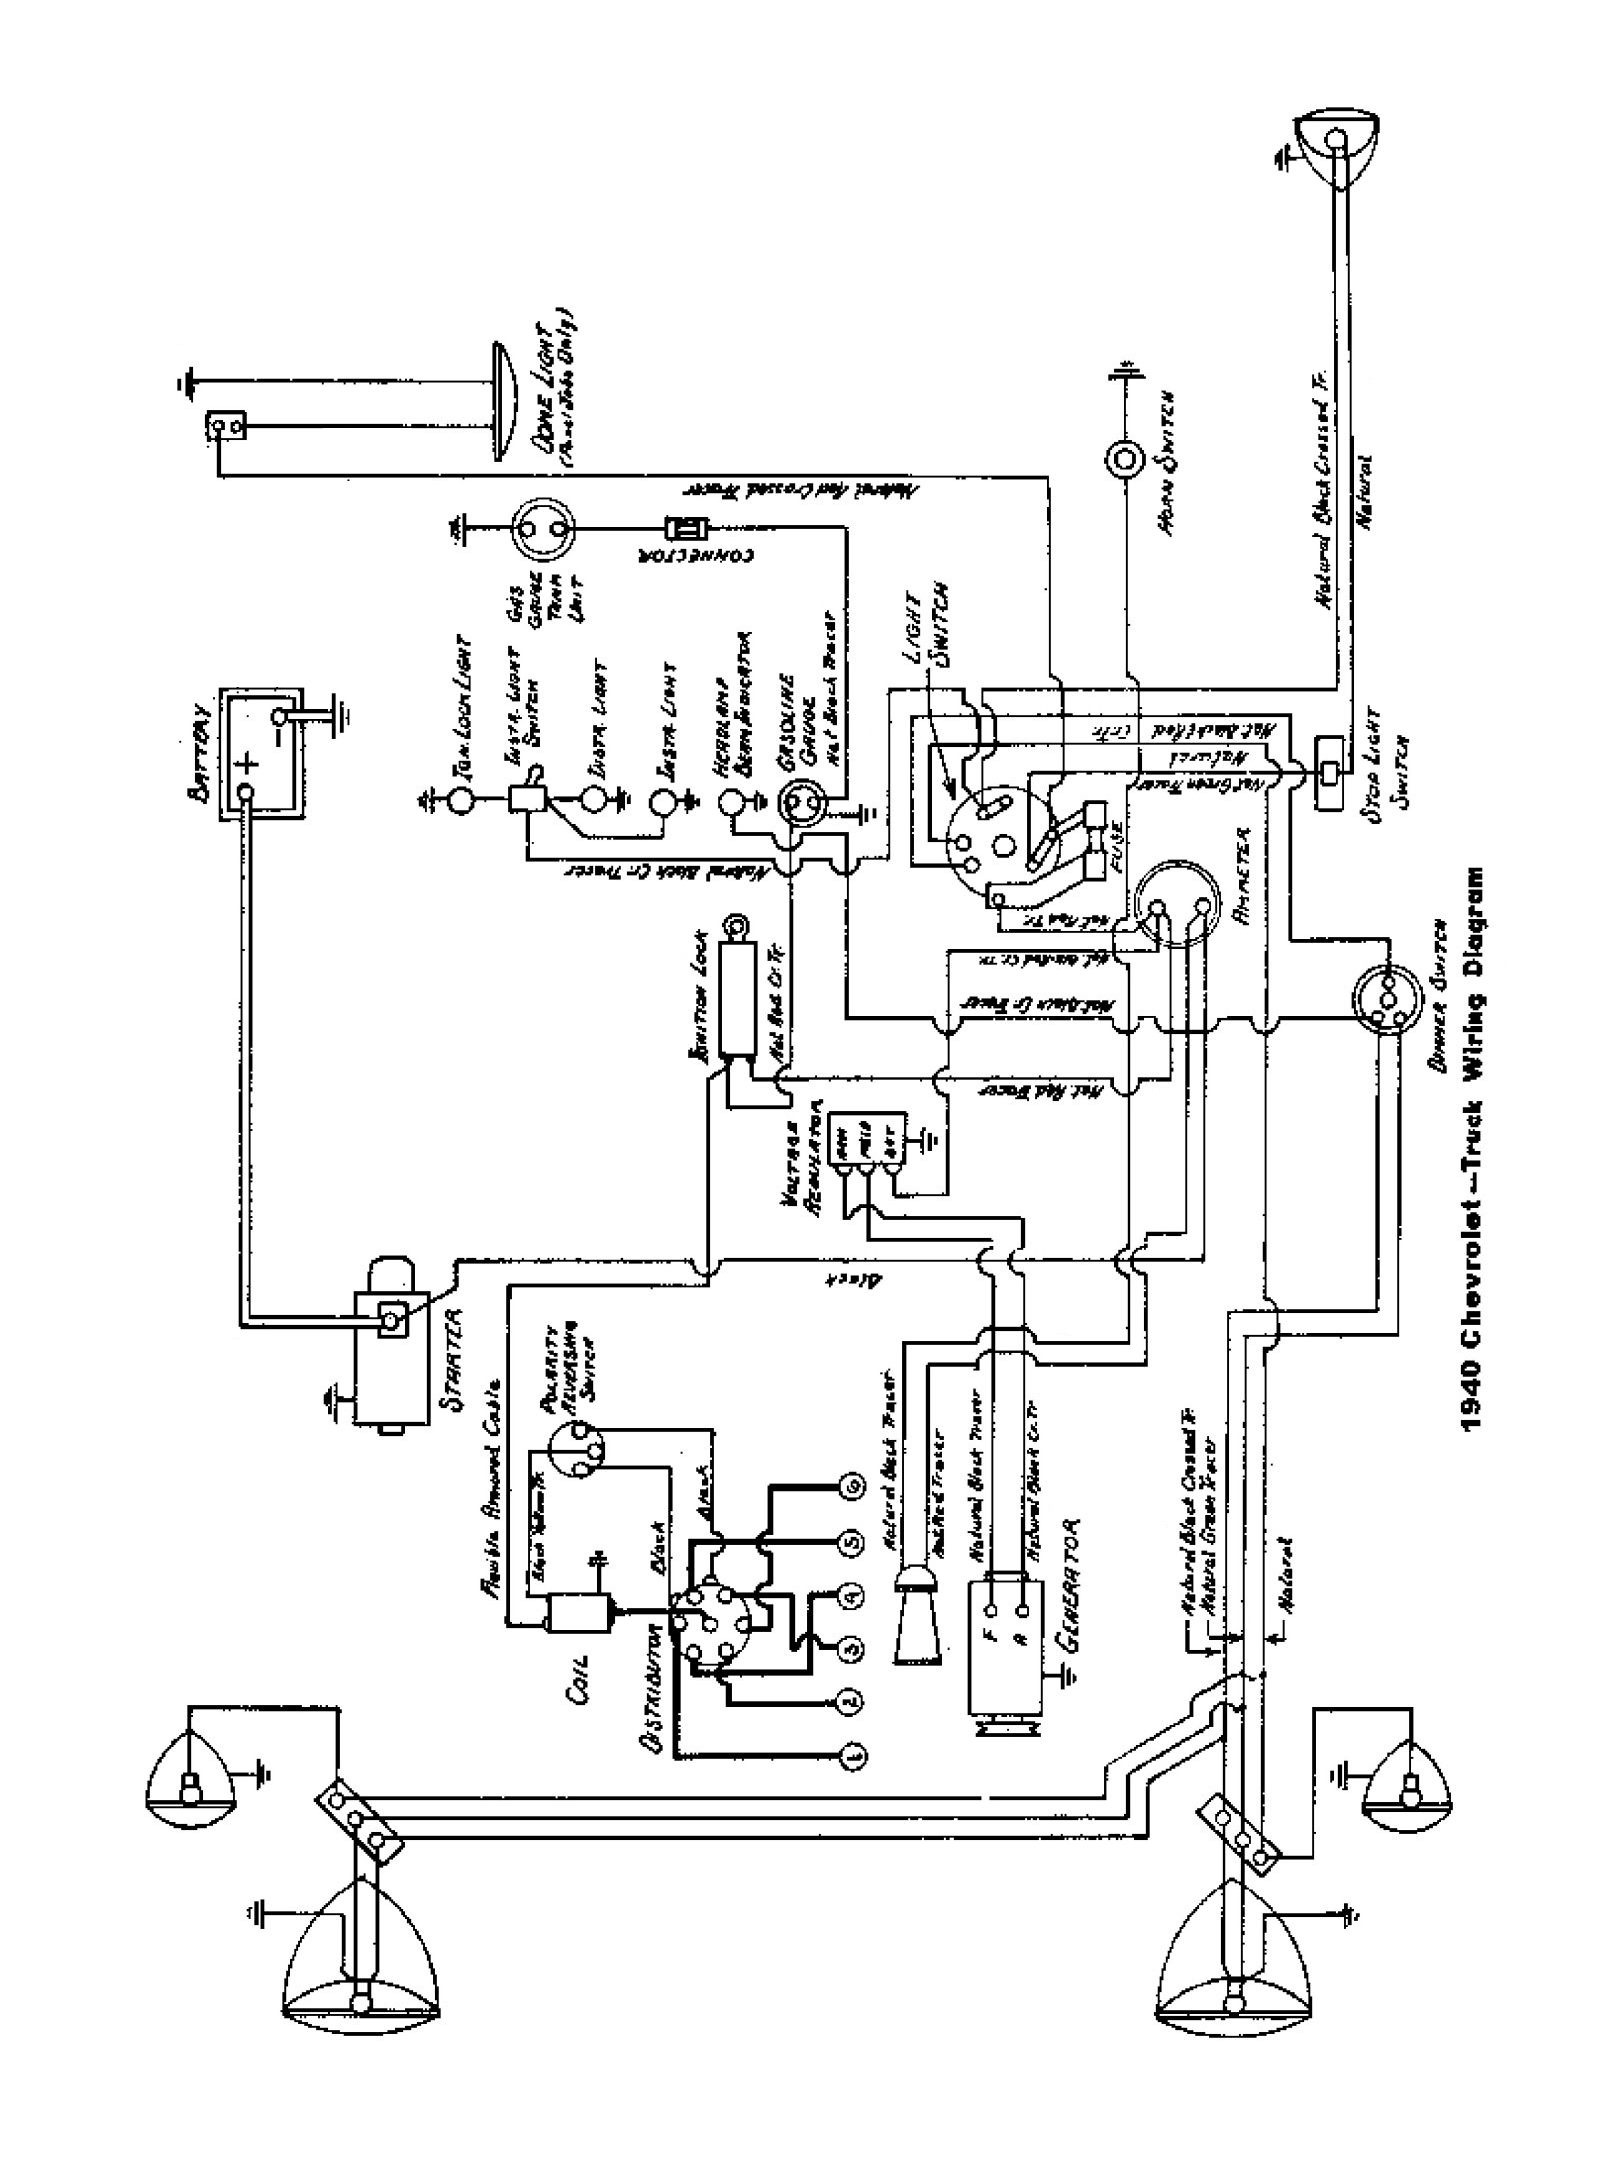 40truck chevy wiring diagrams 1960 corvette wiring diagram at panicattacktreatment.co